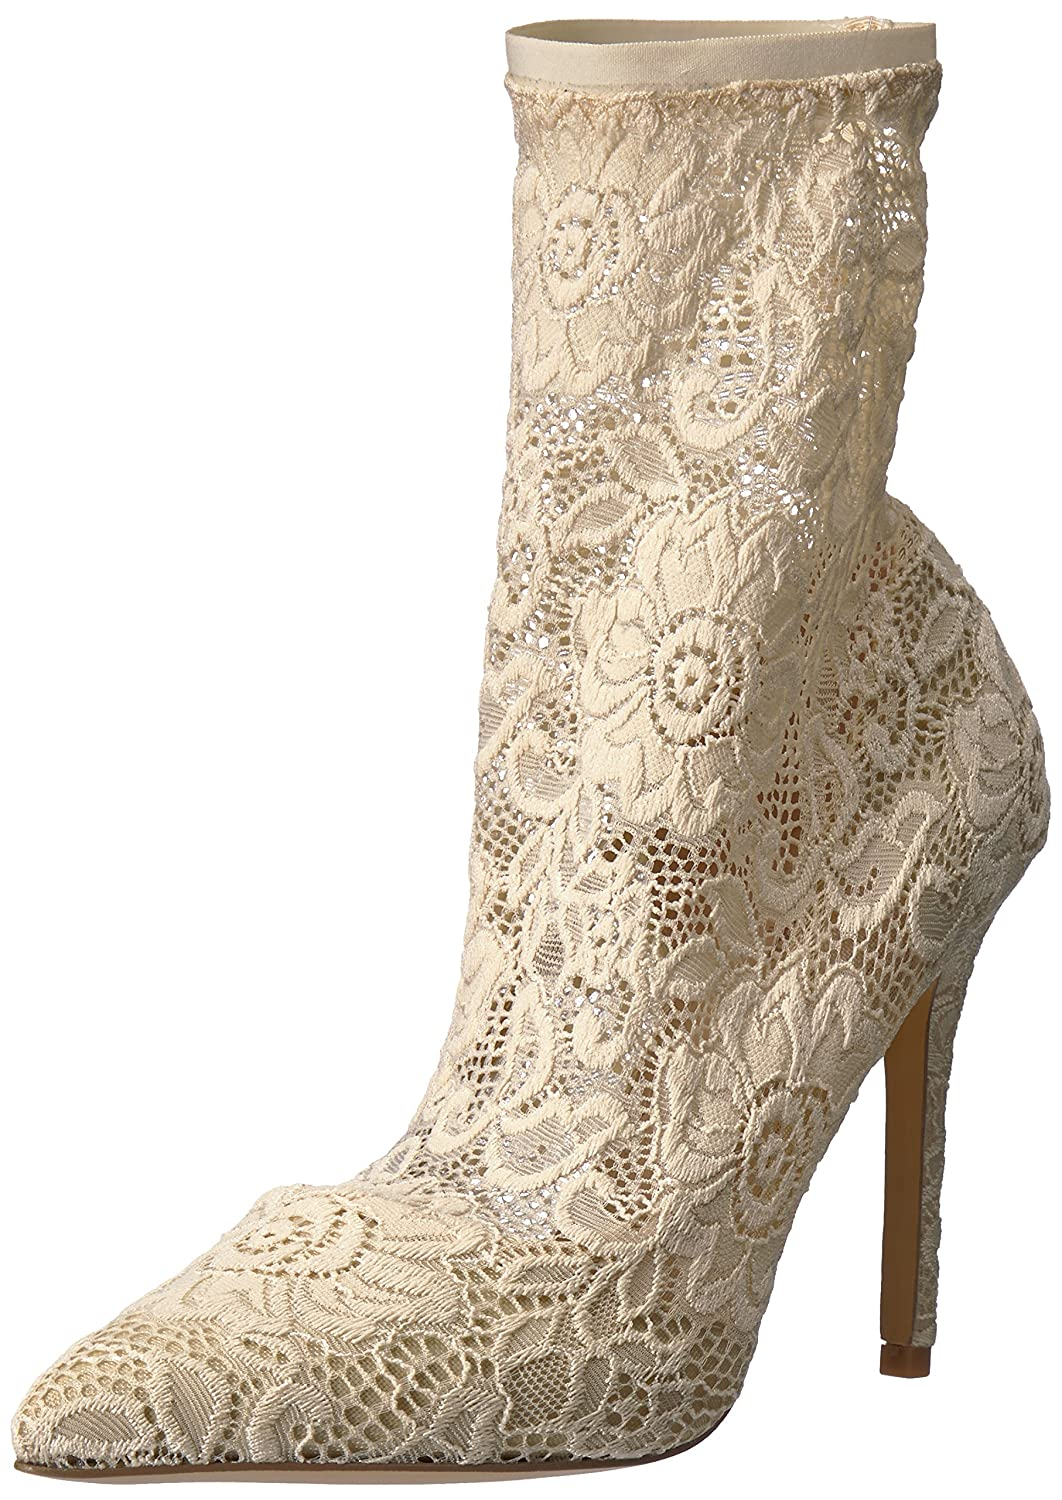 Charles by Charles David Women's Player Fashion Boot B075QGB3K1 6.5 B(M) US|Ivory